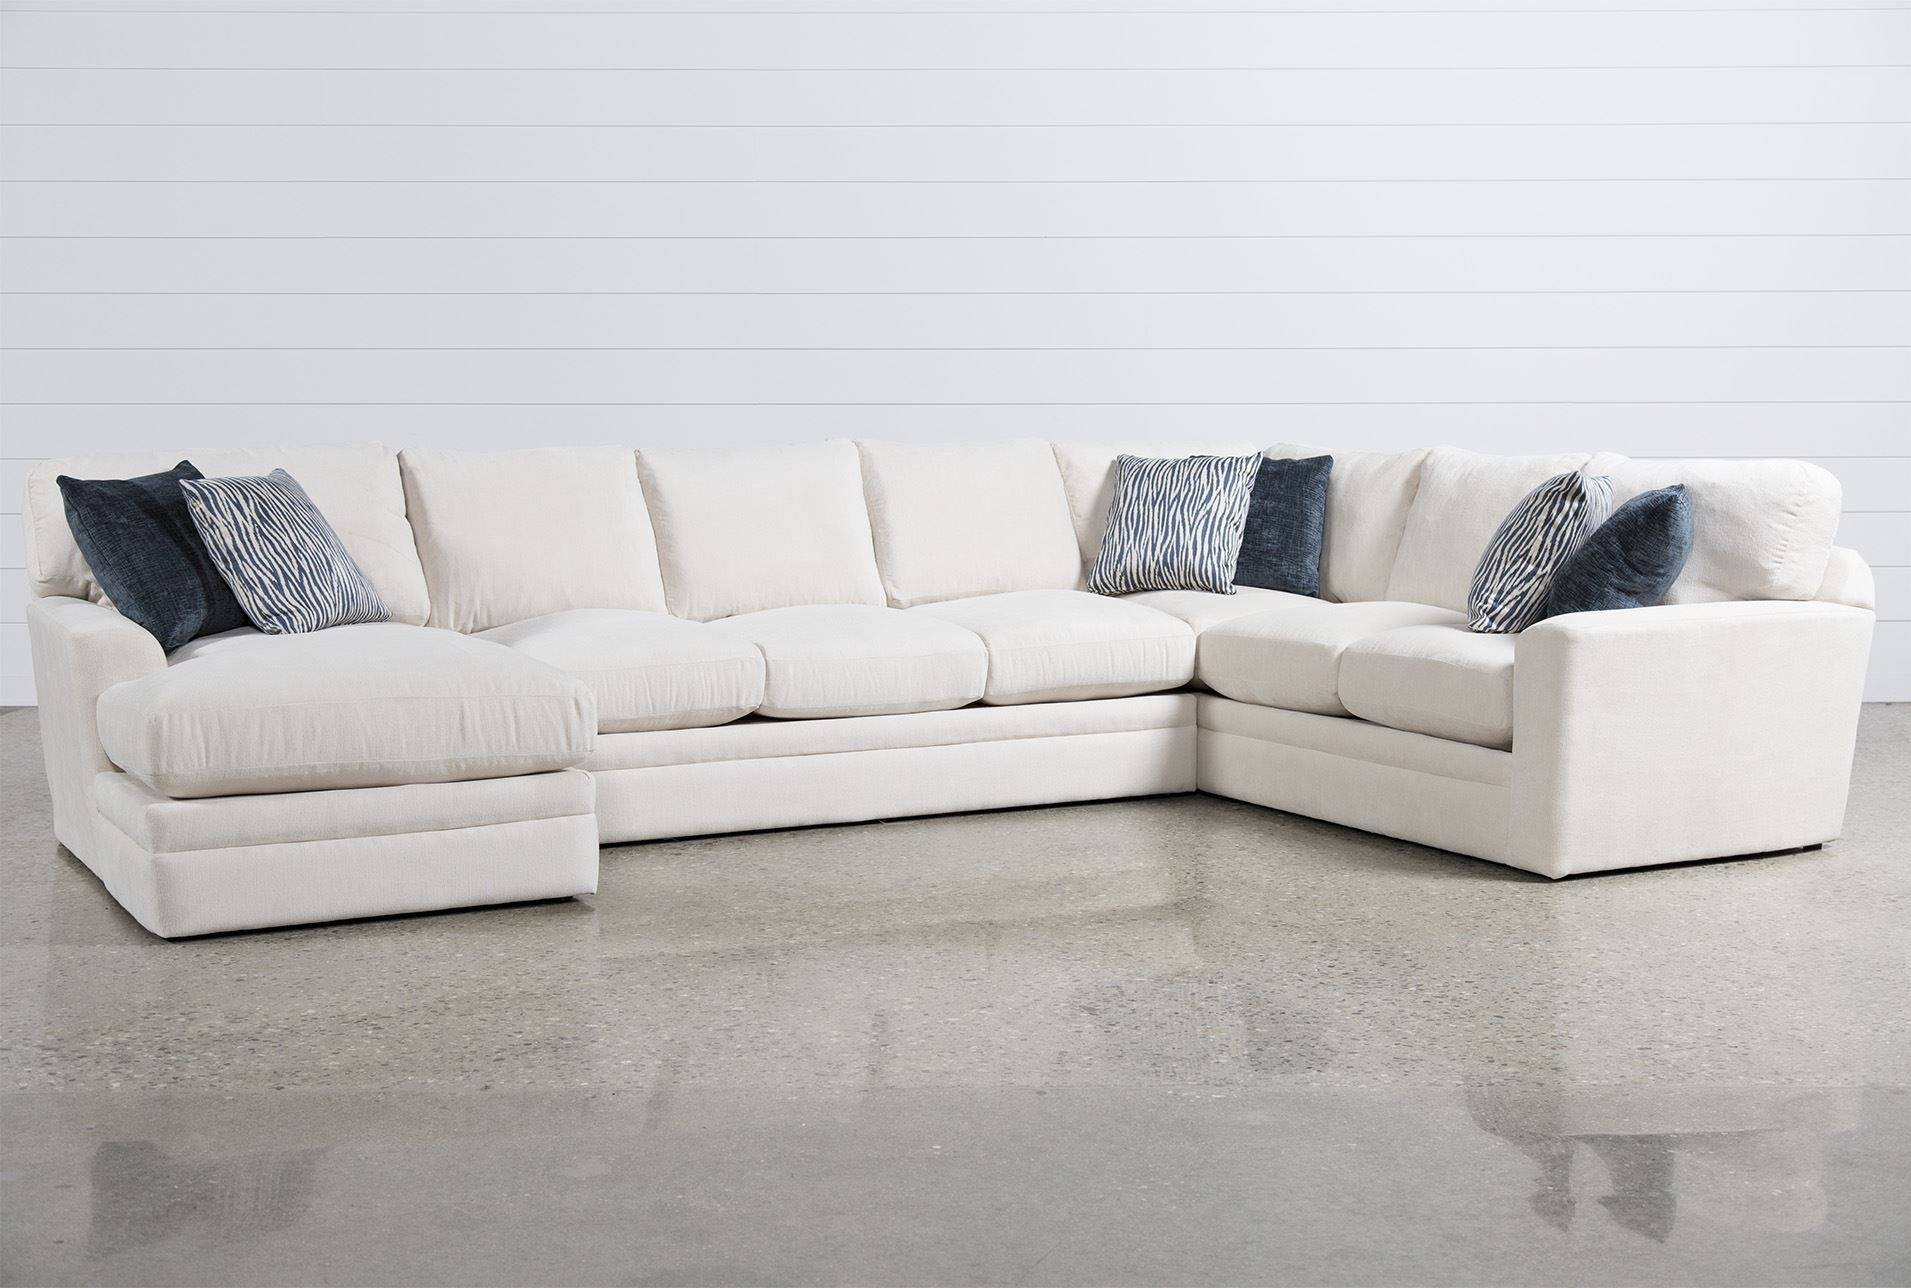 Glamour Ii 3 Piece Sectional | Furniture Options For Roland Beach With Regard To Evan 2 Piece Sectionals With Raf Chaise (View 12 of 25)